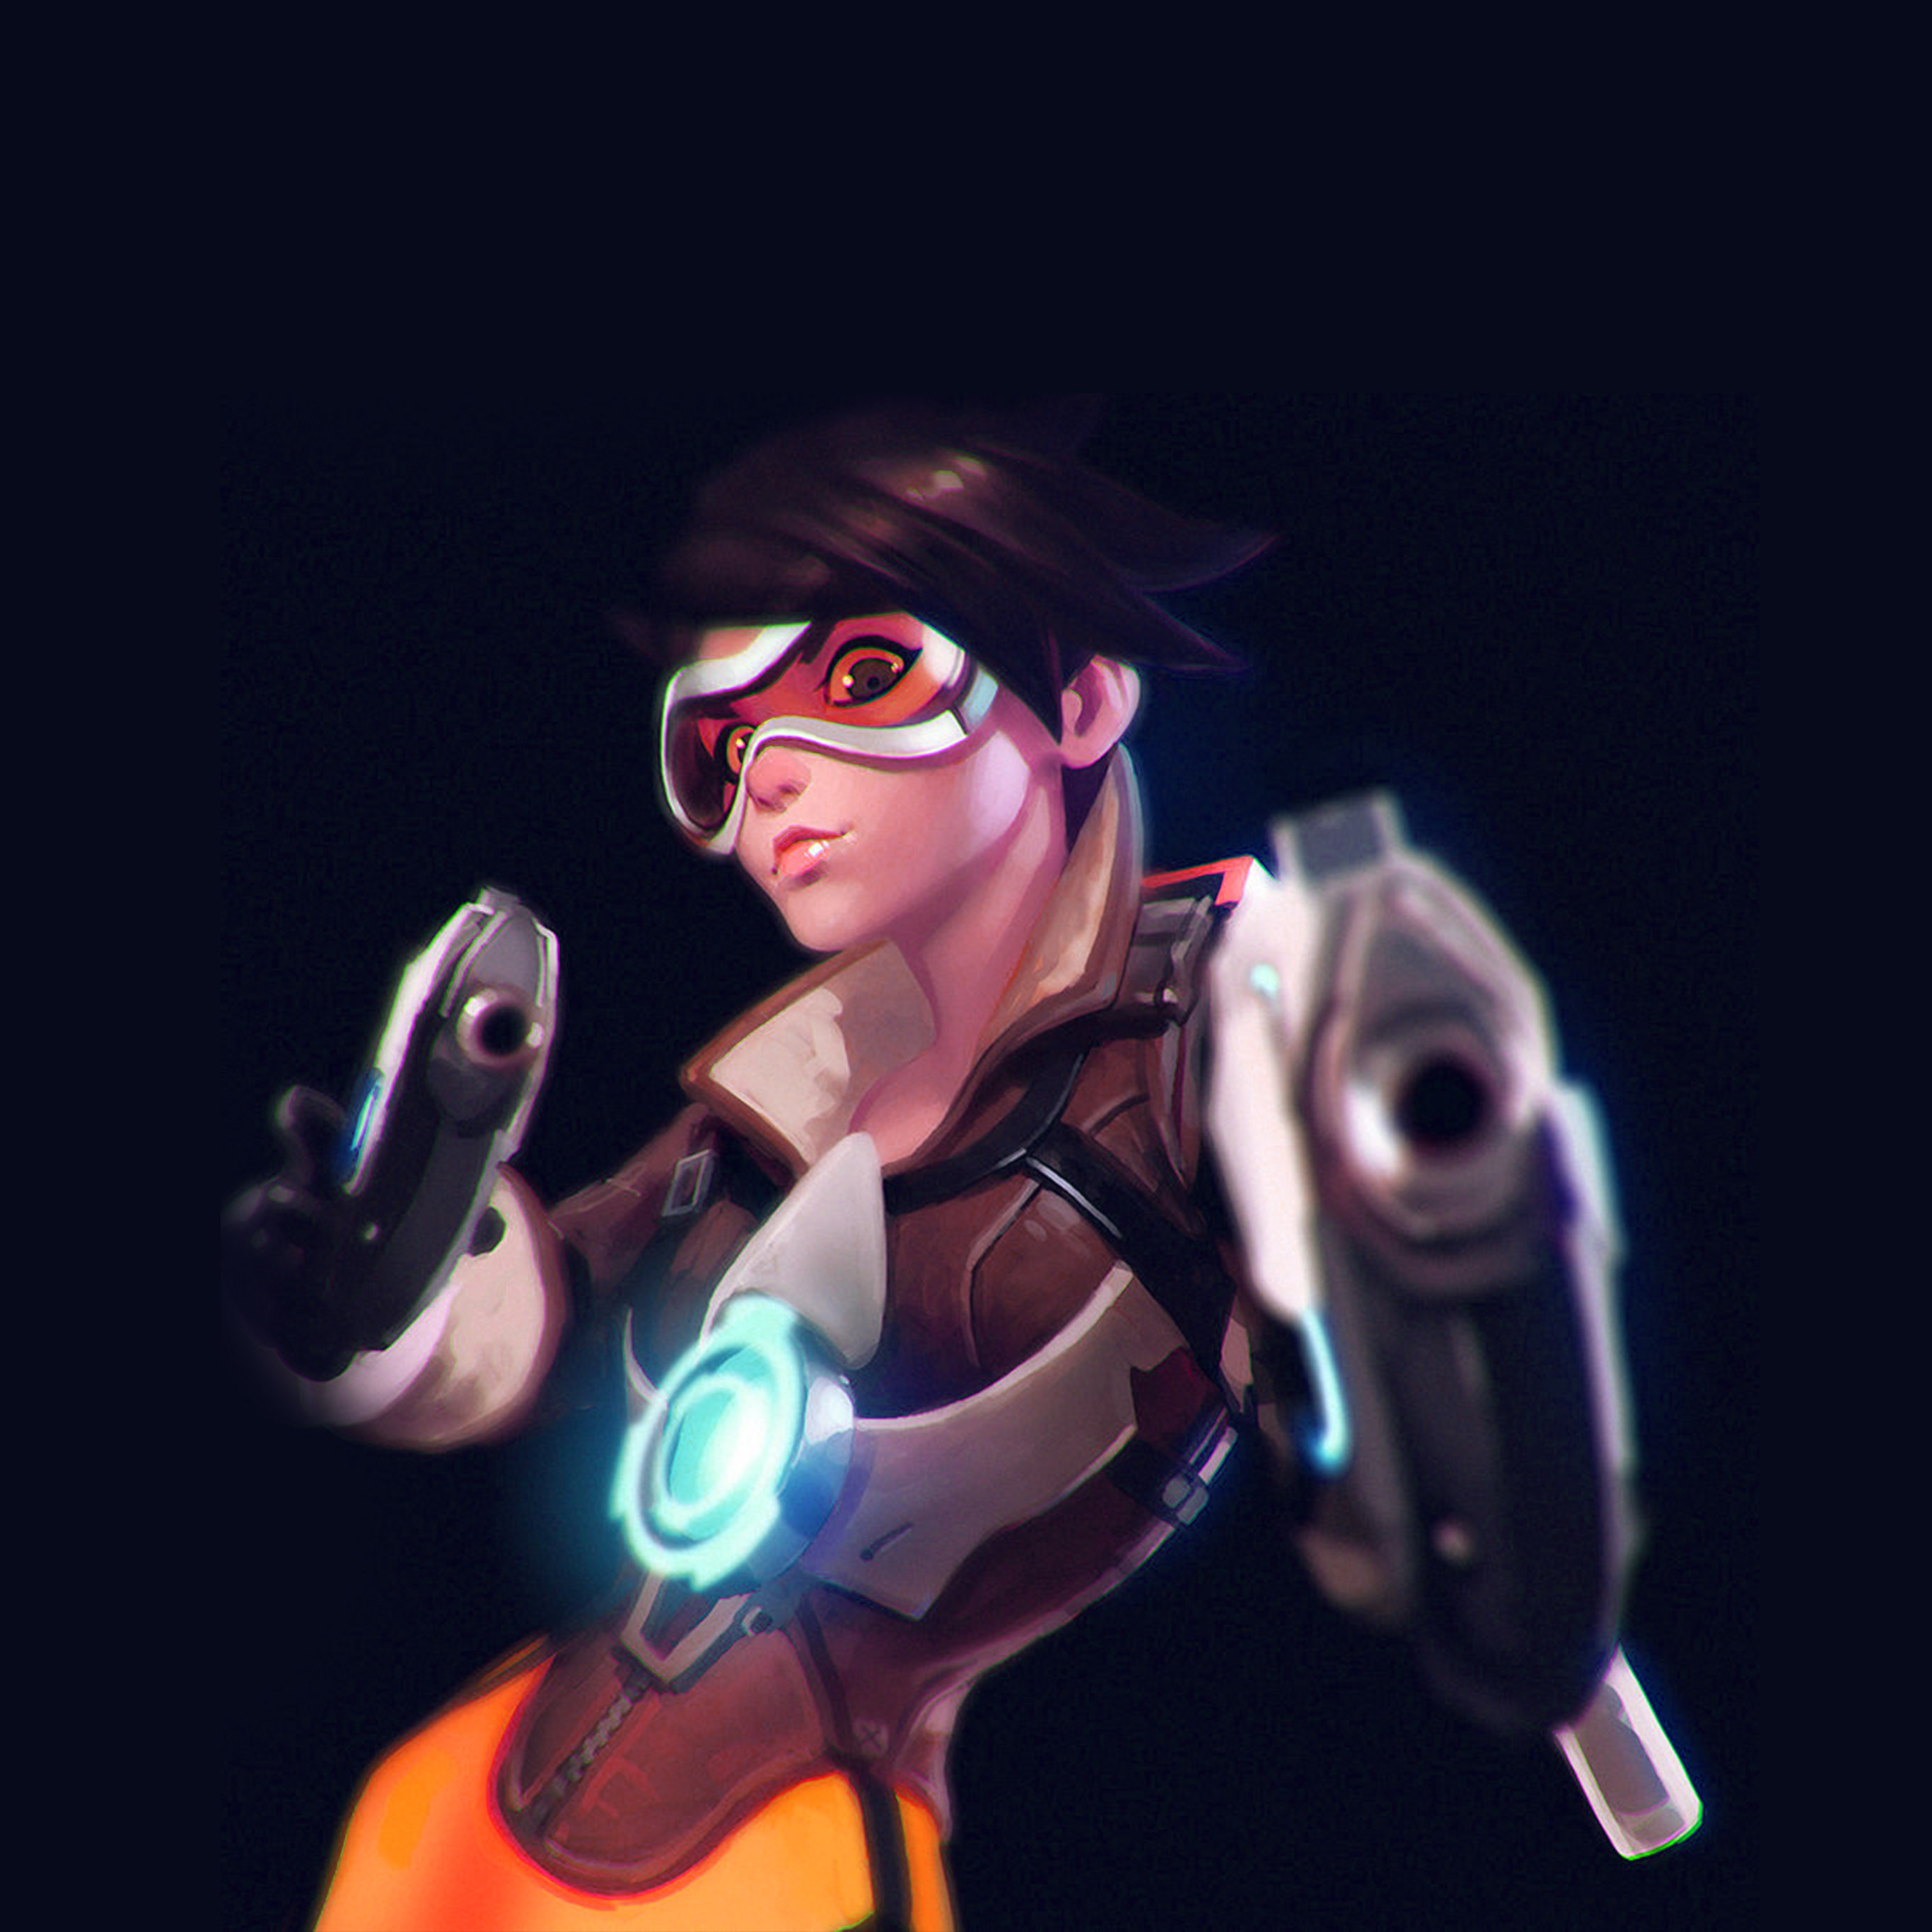 Ay36 Ilya Kuvshinov Overwatch Tracer Hero Game Illustration Art Blue